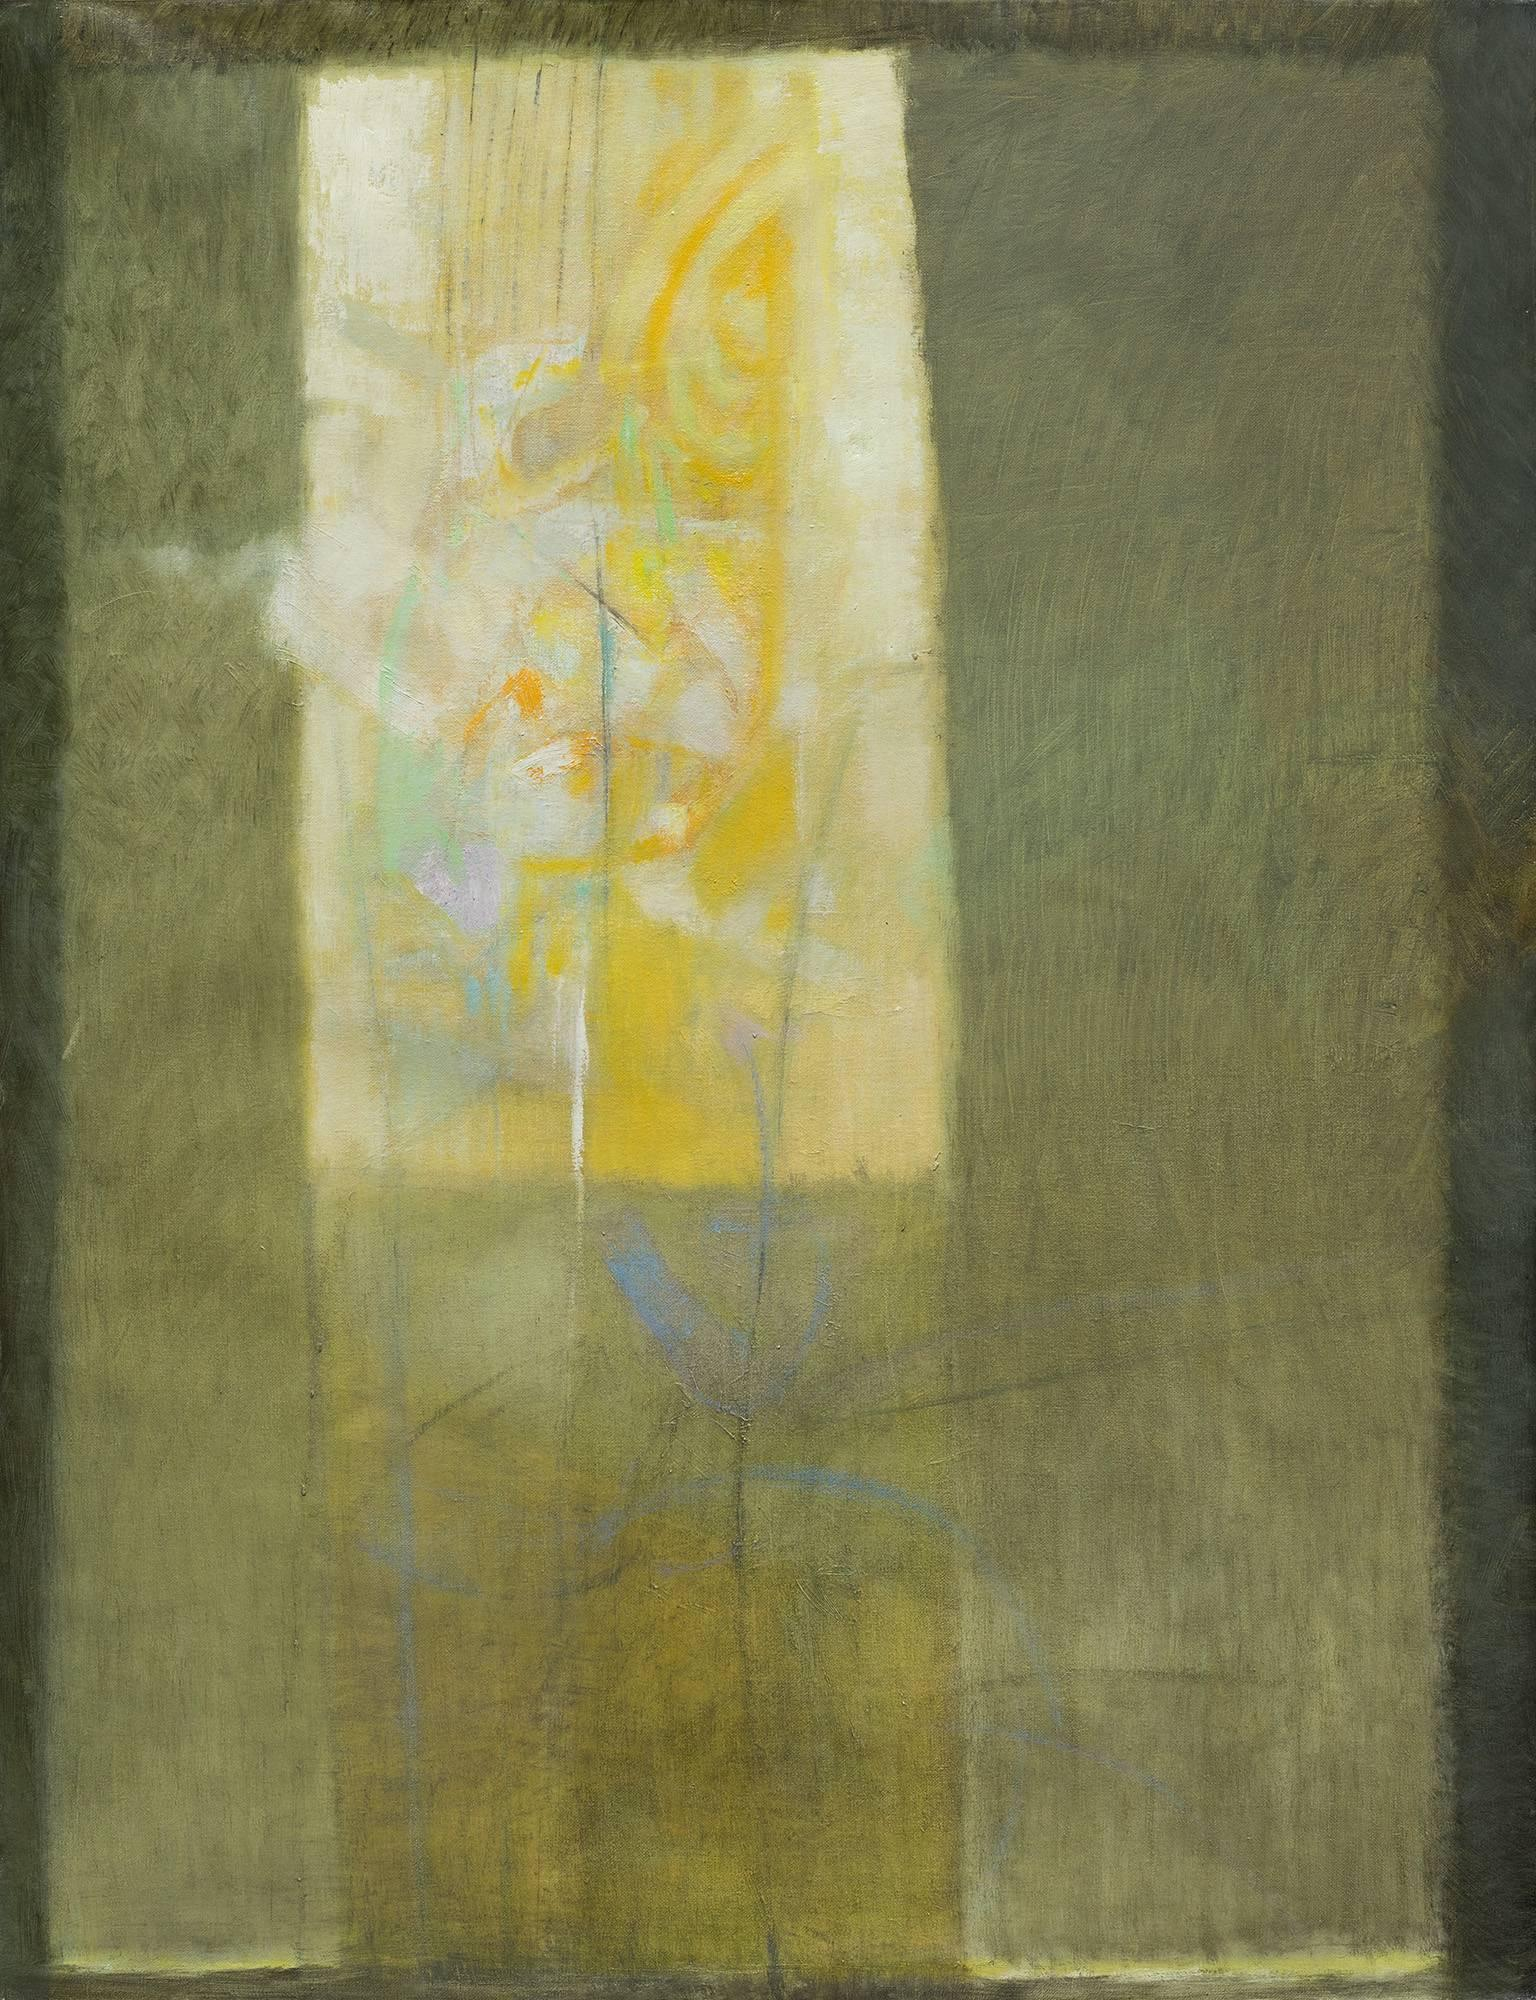 Vitrales Amarillo 4 - Abstract Oil Painting with Green and Yellow Colors